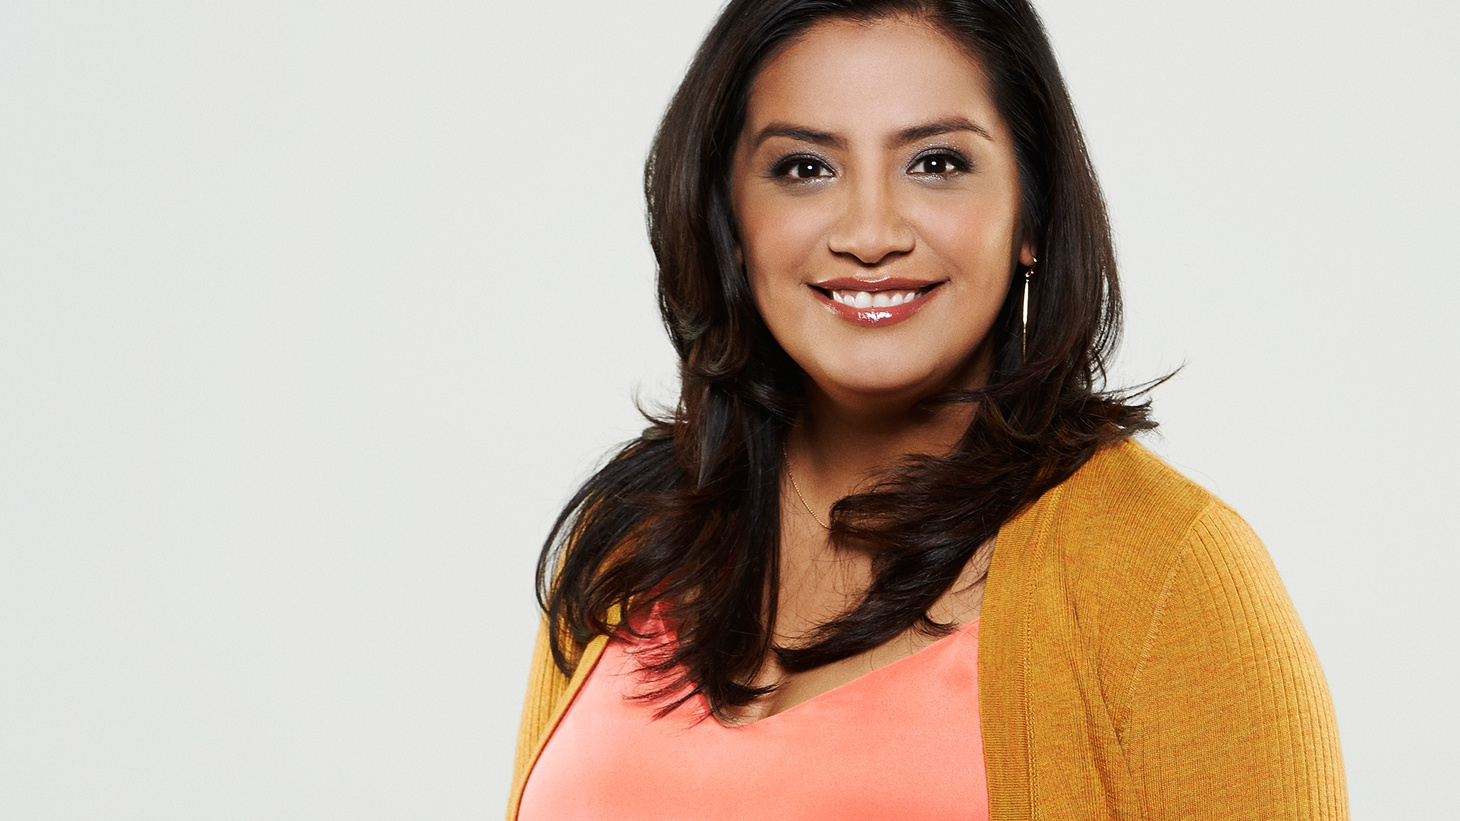 Comedian Cristela Alonzo created and starred in an ABC sitcom based on her own life -- which made getting canceled after just one season that much harder. She reflects on the past year and tells us why she won't be joining The View.